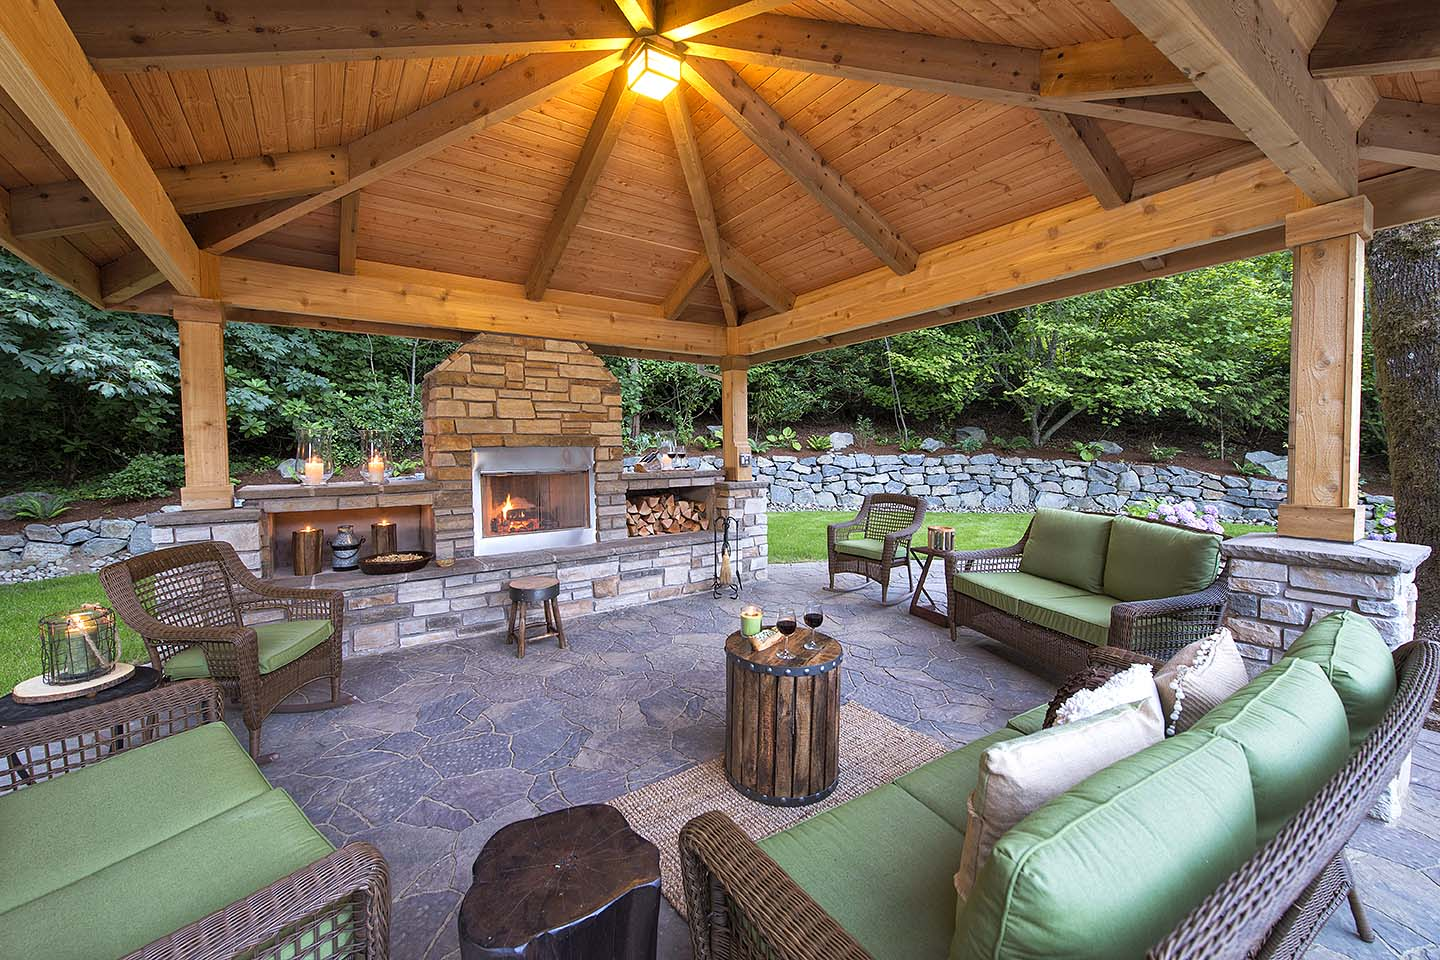 Gazebo Outdoor Living room